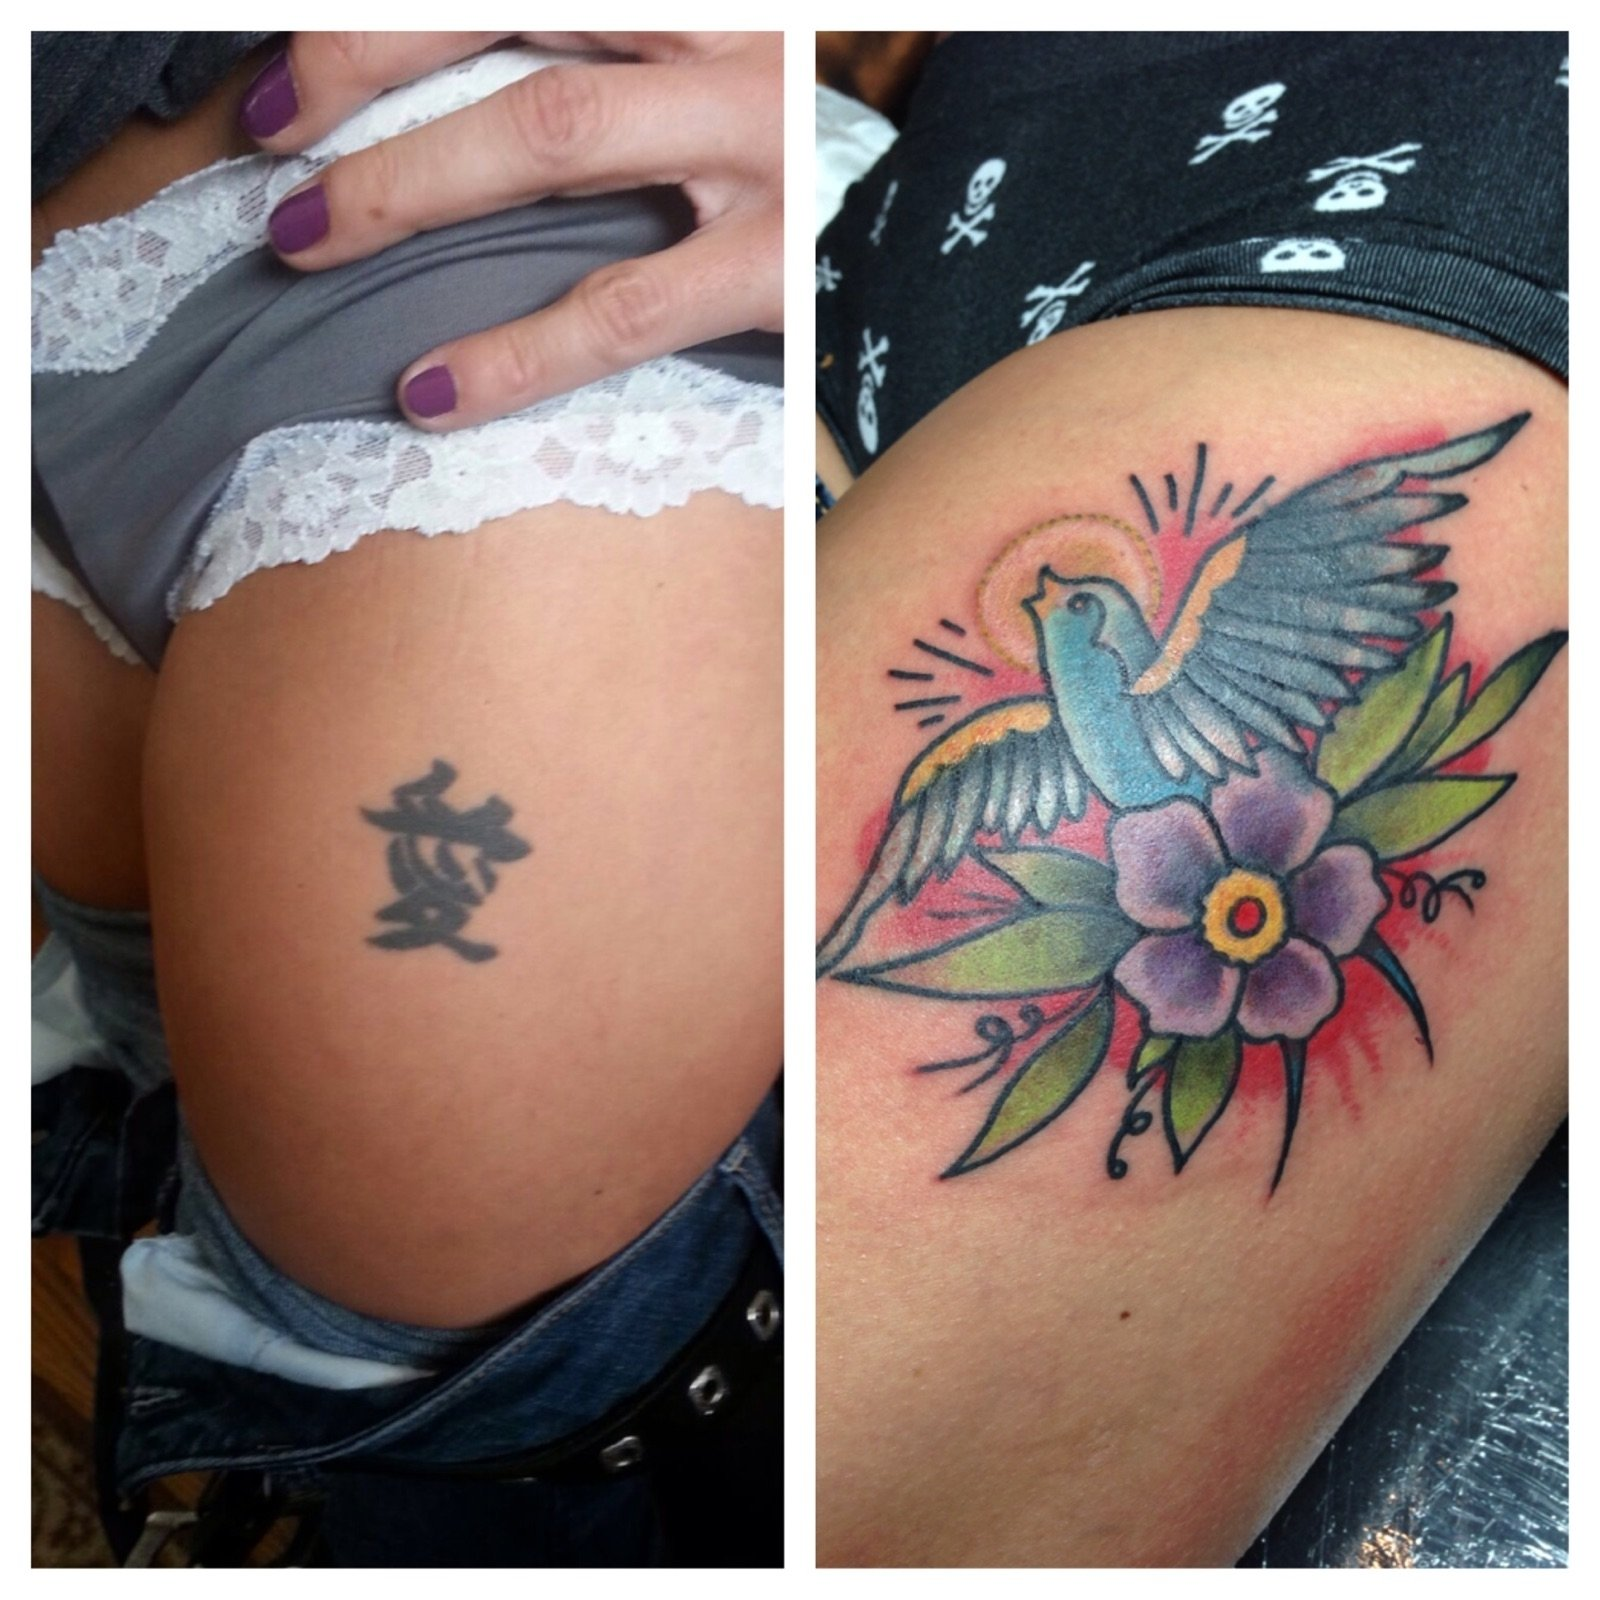 10 Trendy Tattoo Name Cover Up Ideas cover up tattoos royal flesh tattoo and piercing chicago tattoo 2020